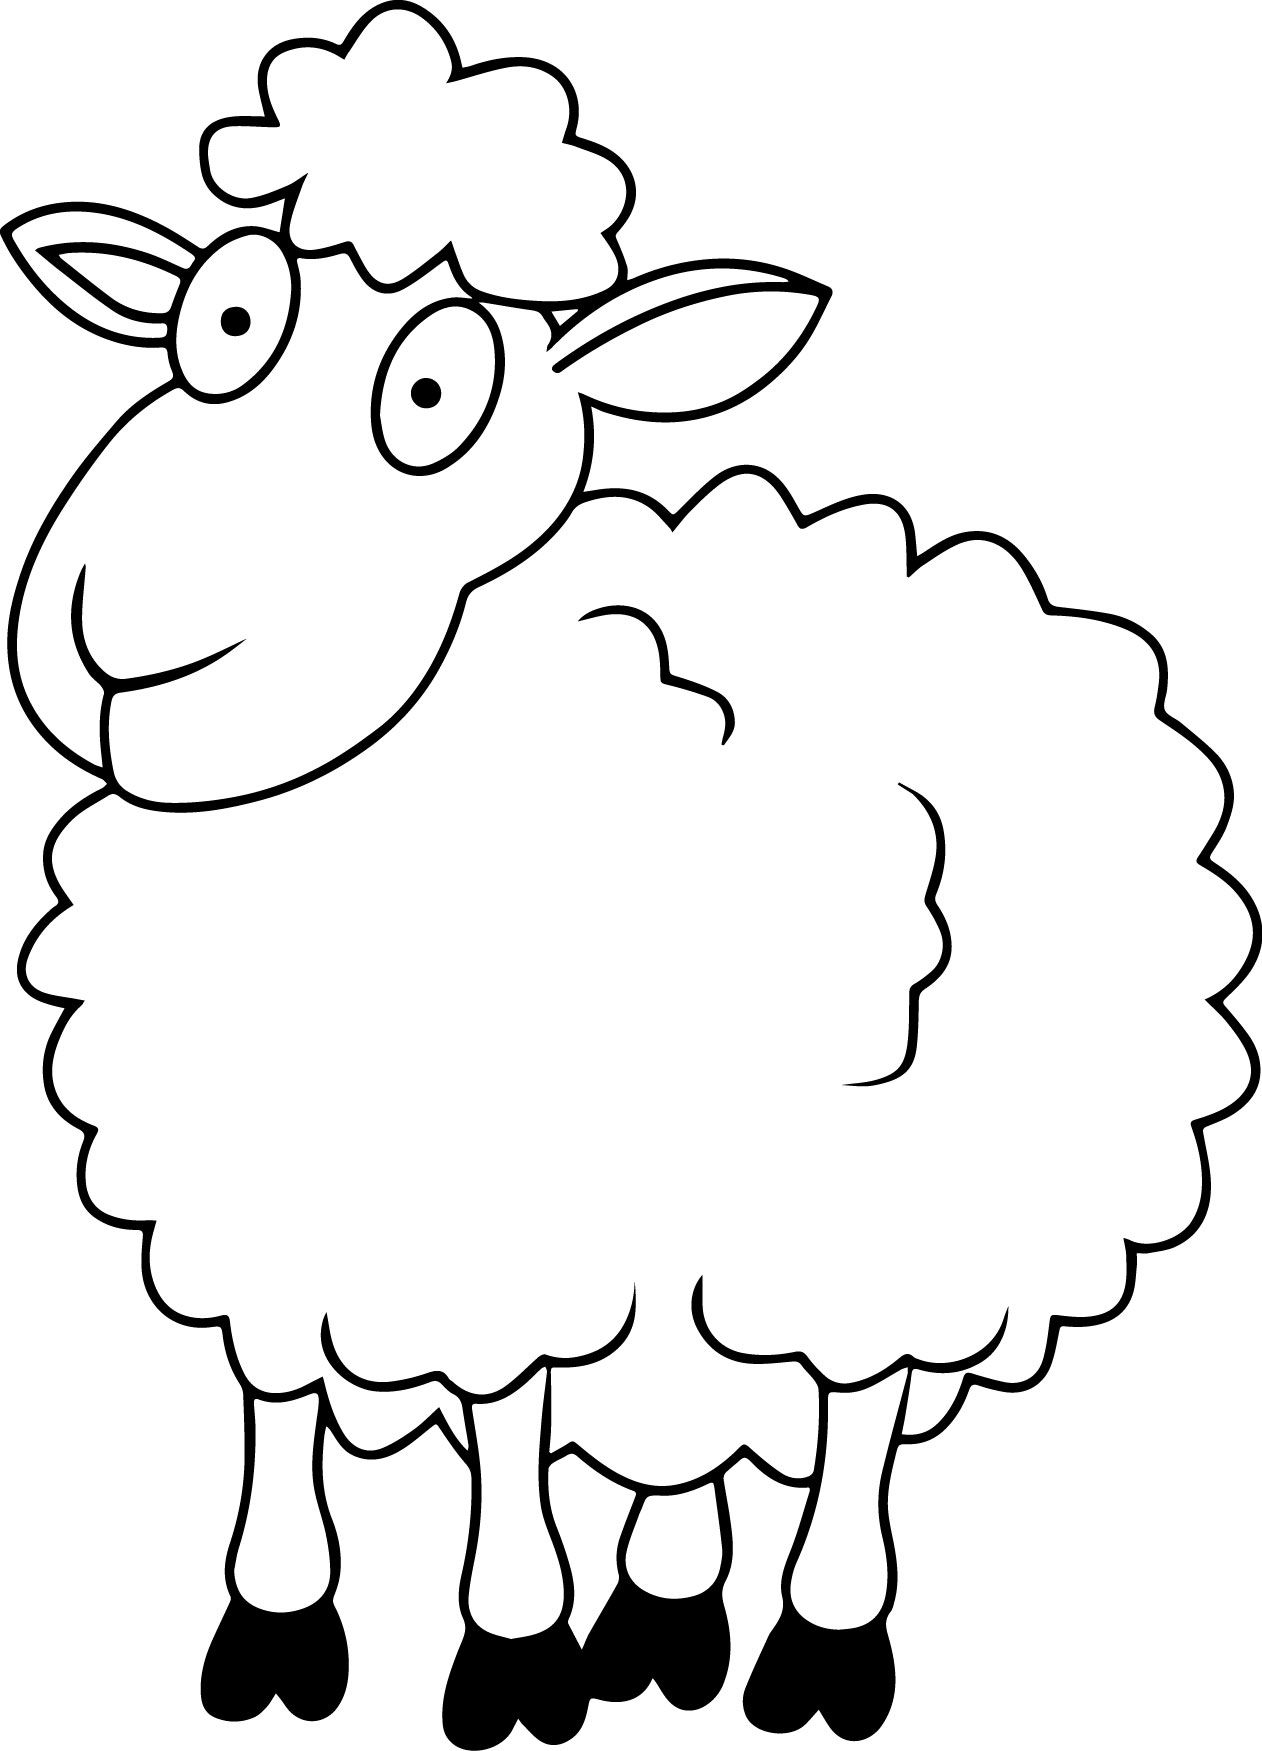 Sheep Coloring Page - Sheep Coloring Pages – 9 Coloring